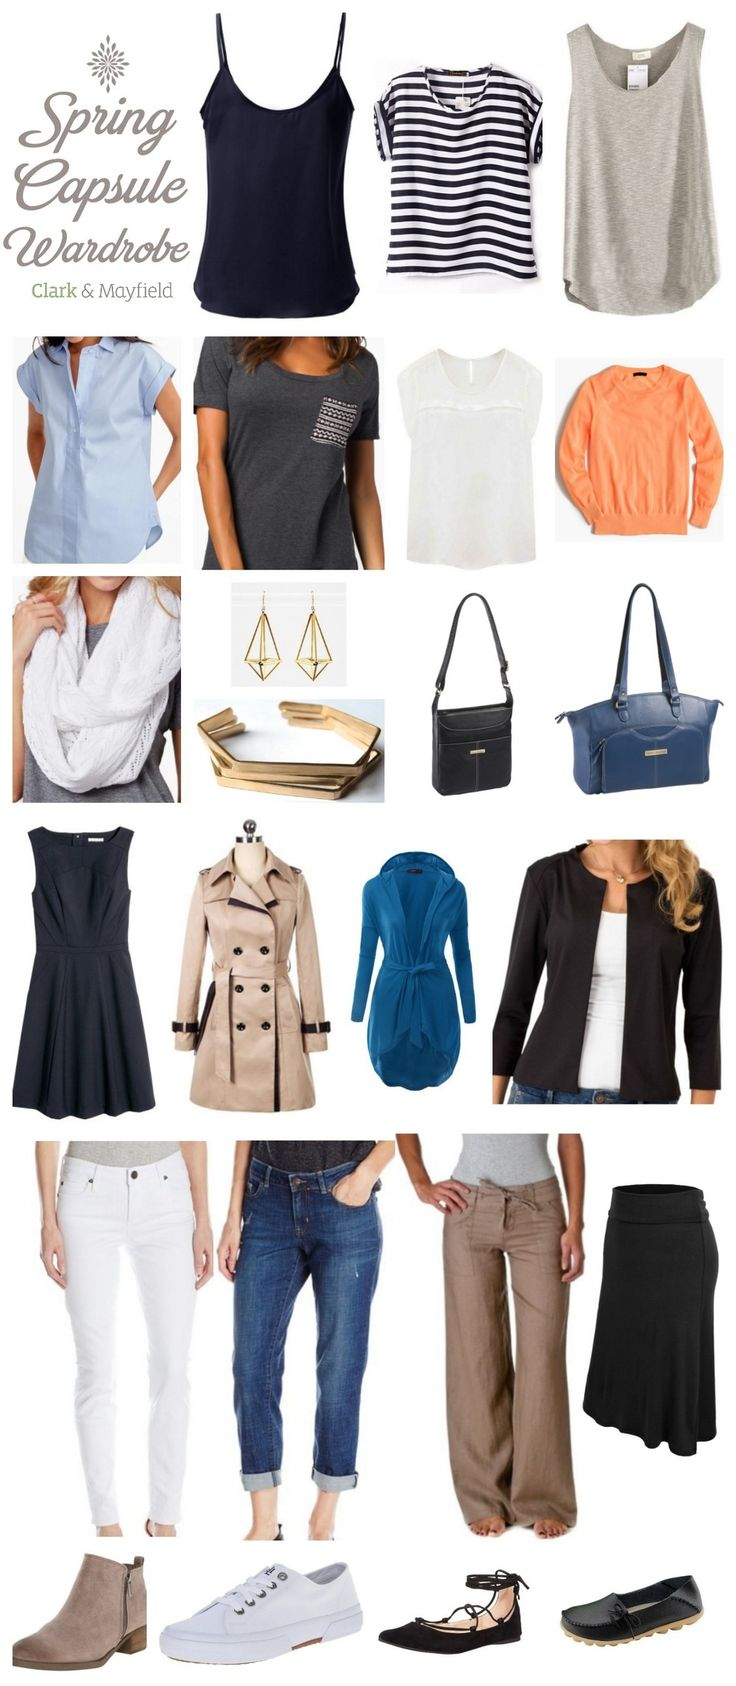 Spring Capsule Wardrobe: 1000+ Images About What To Wear For Travel On Pinterest